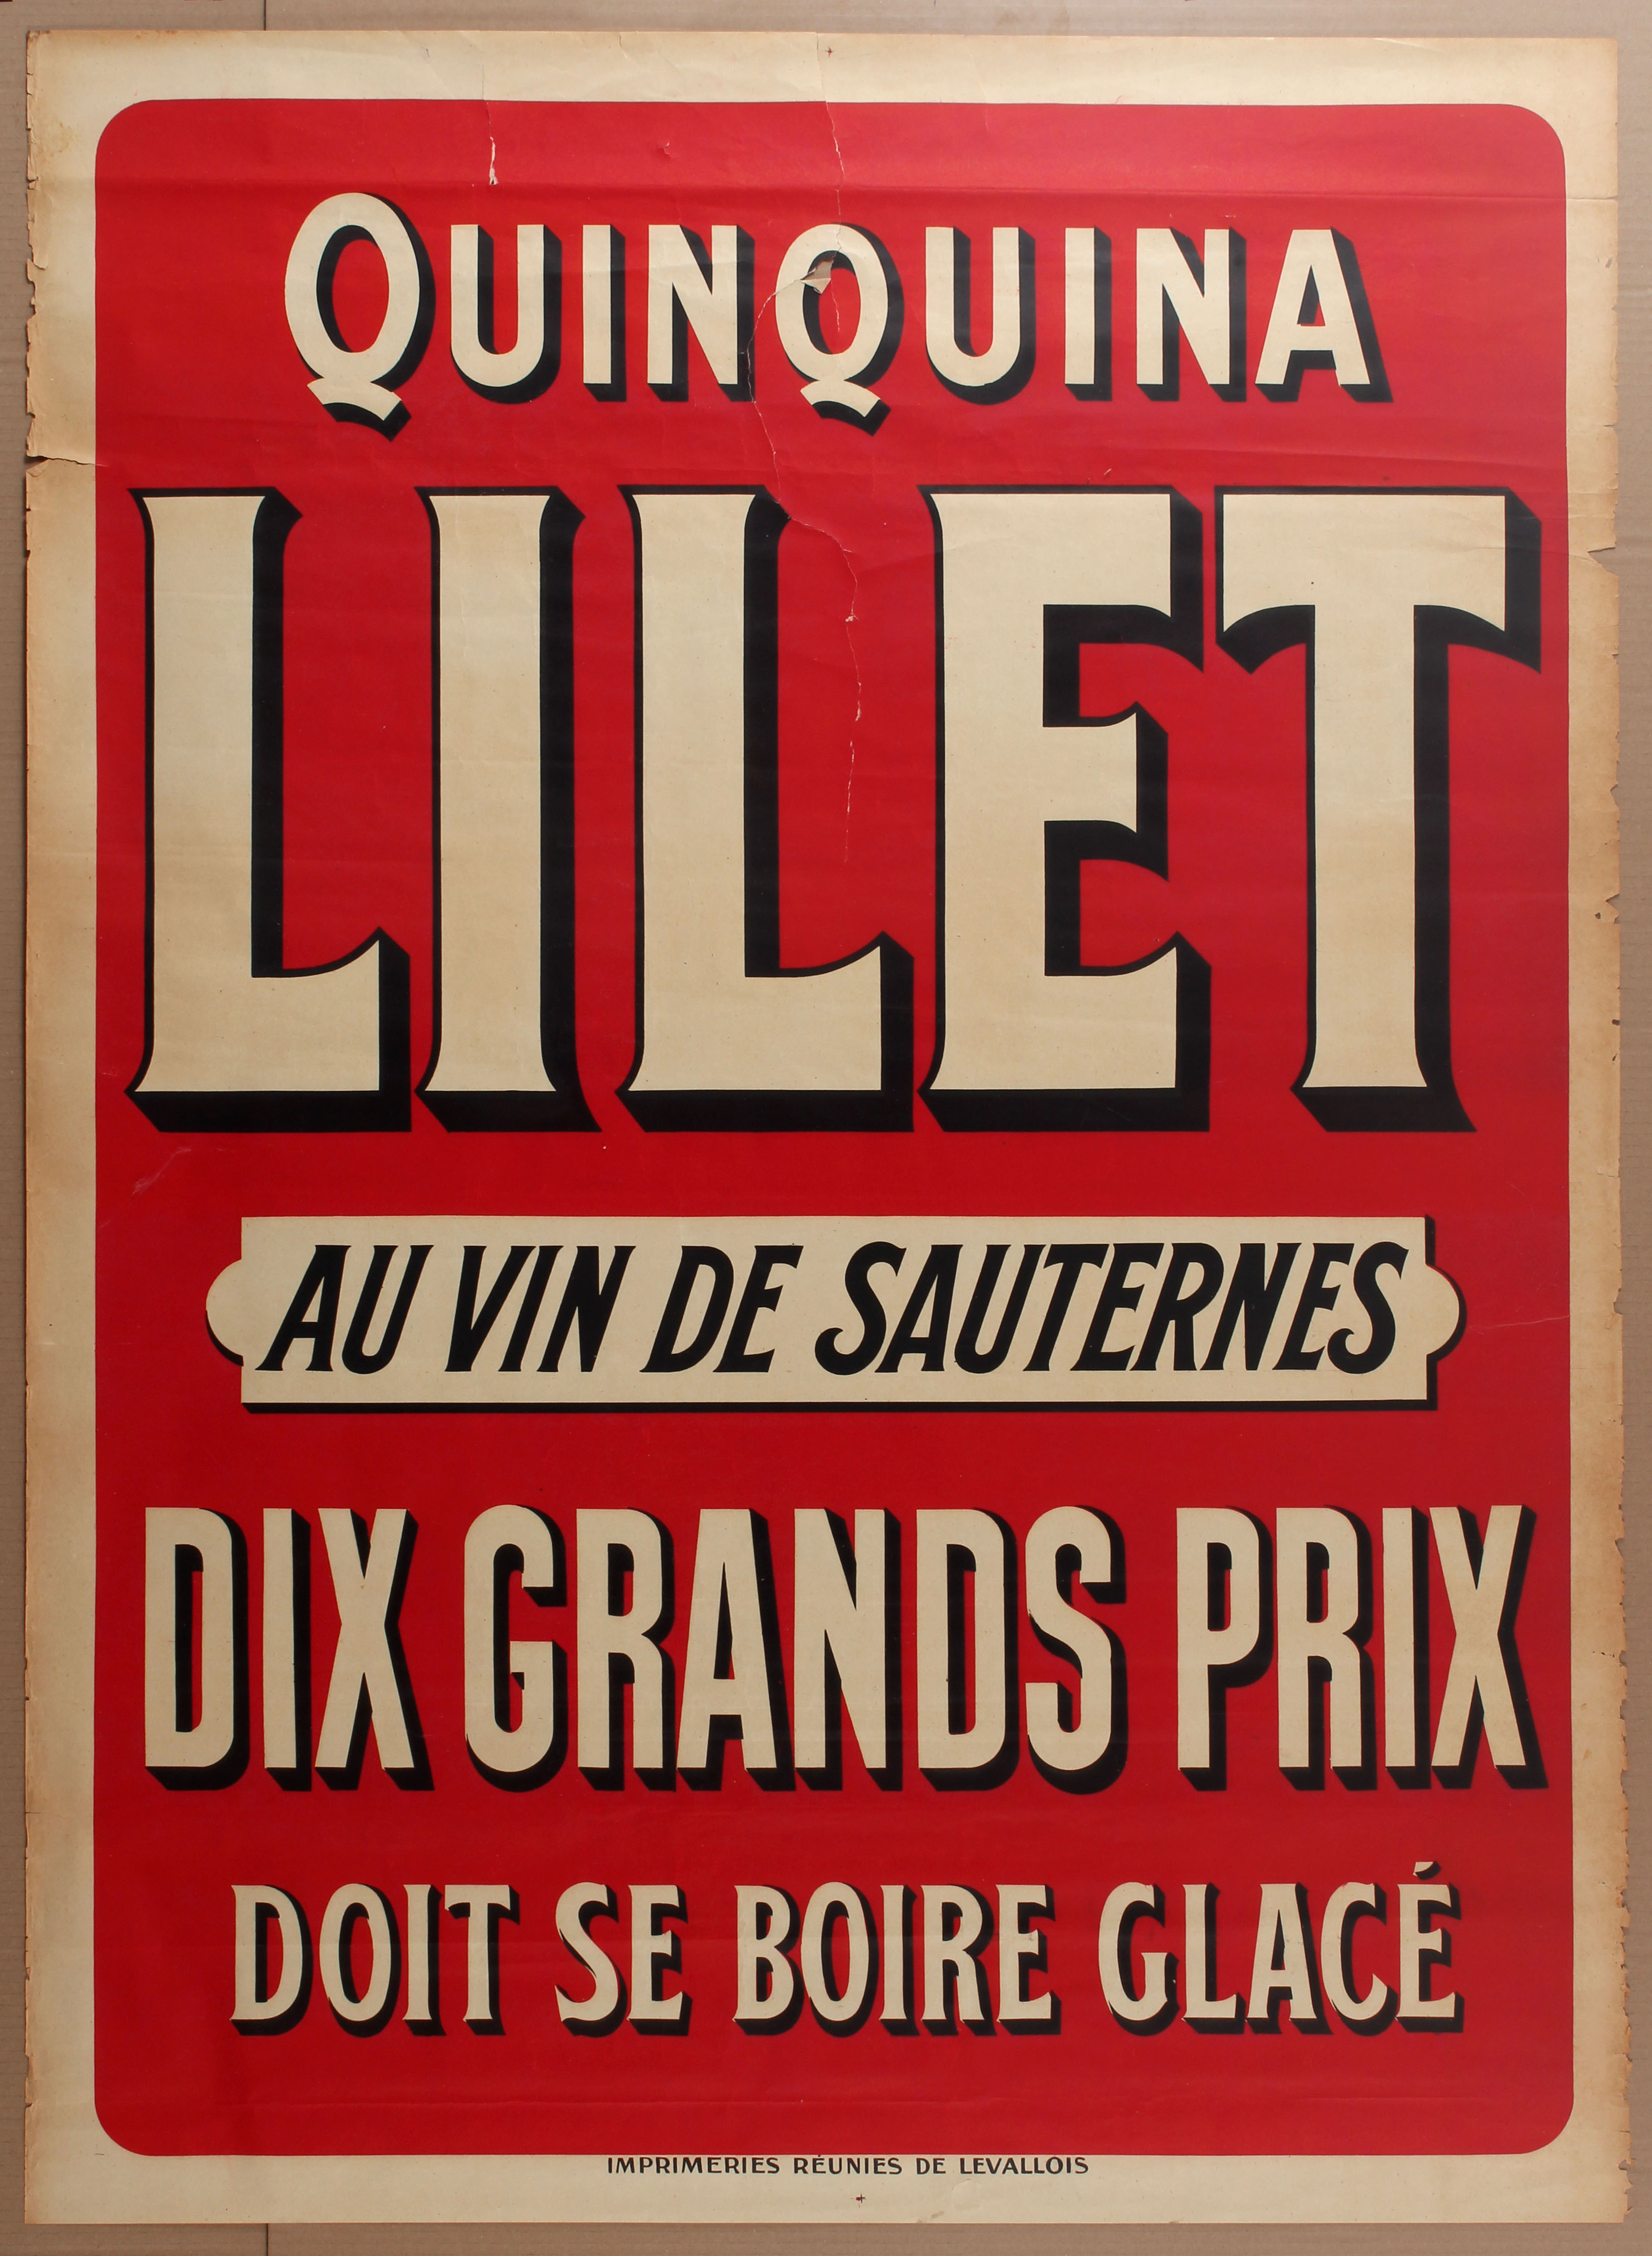 Lot 1013 - Advertising Poster Lilet Alcohol Drink